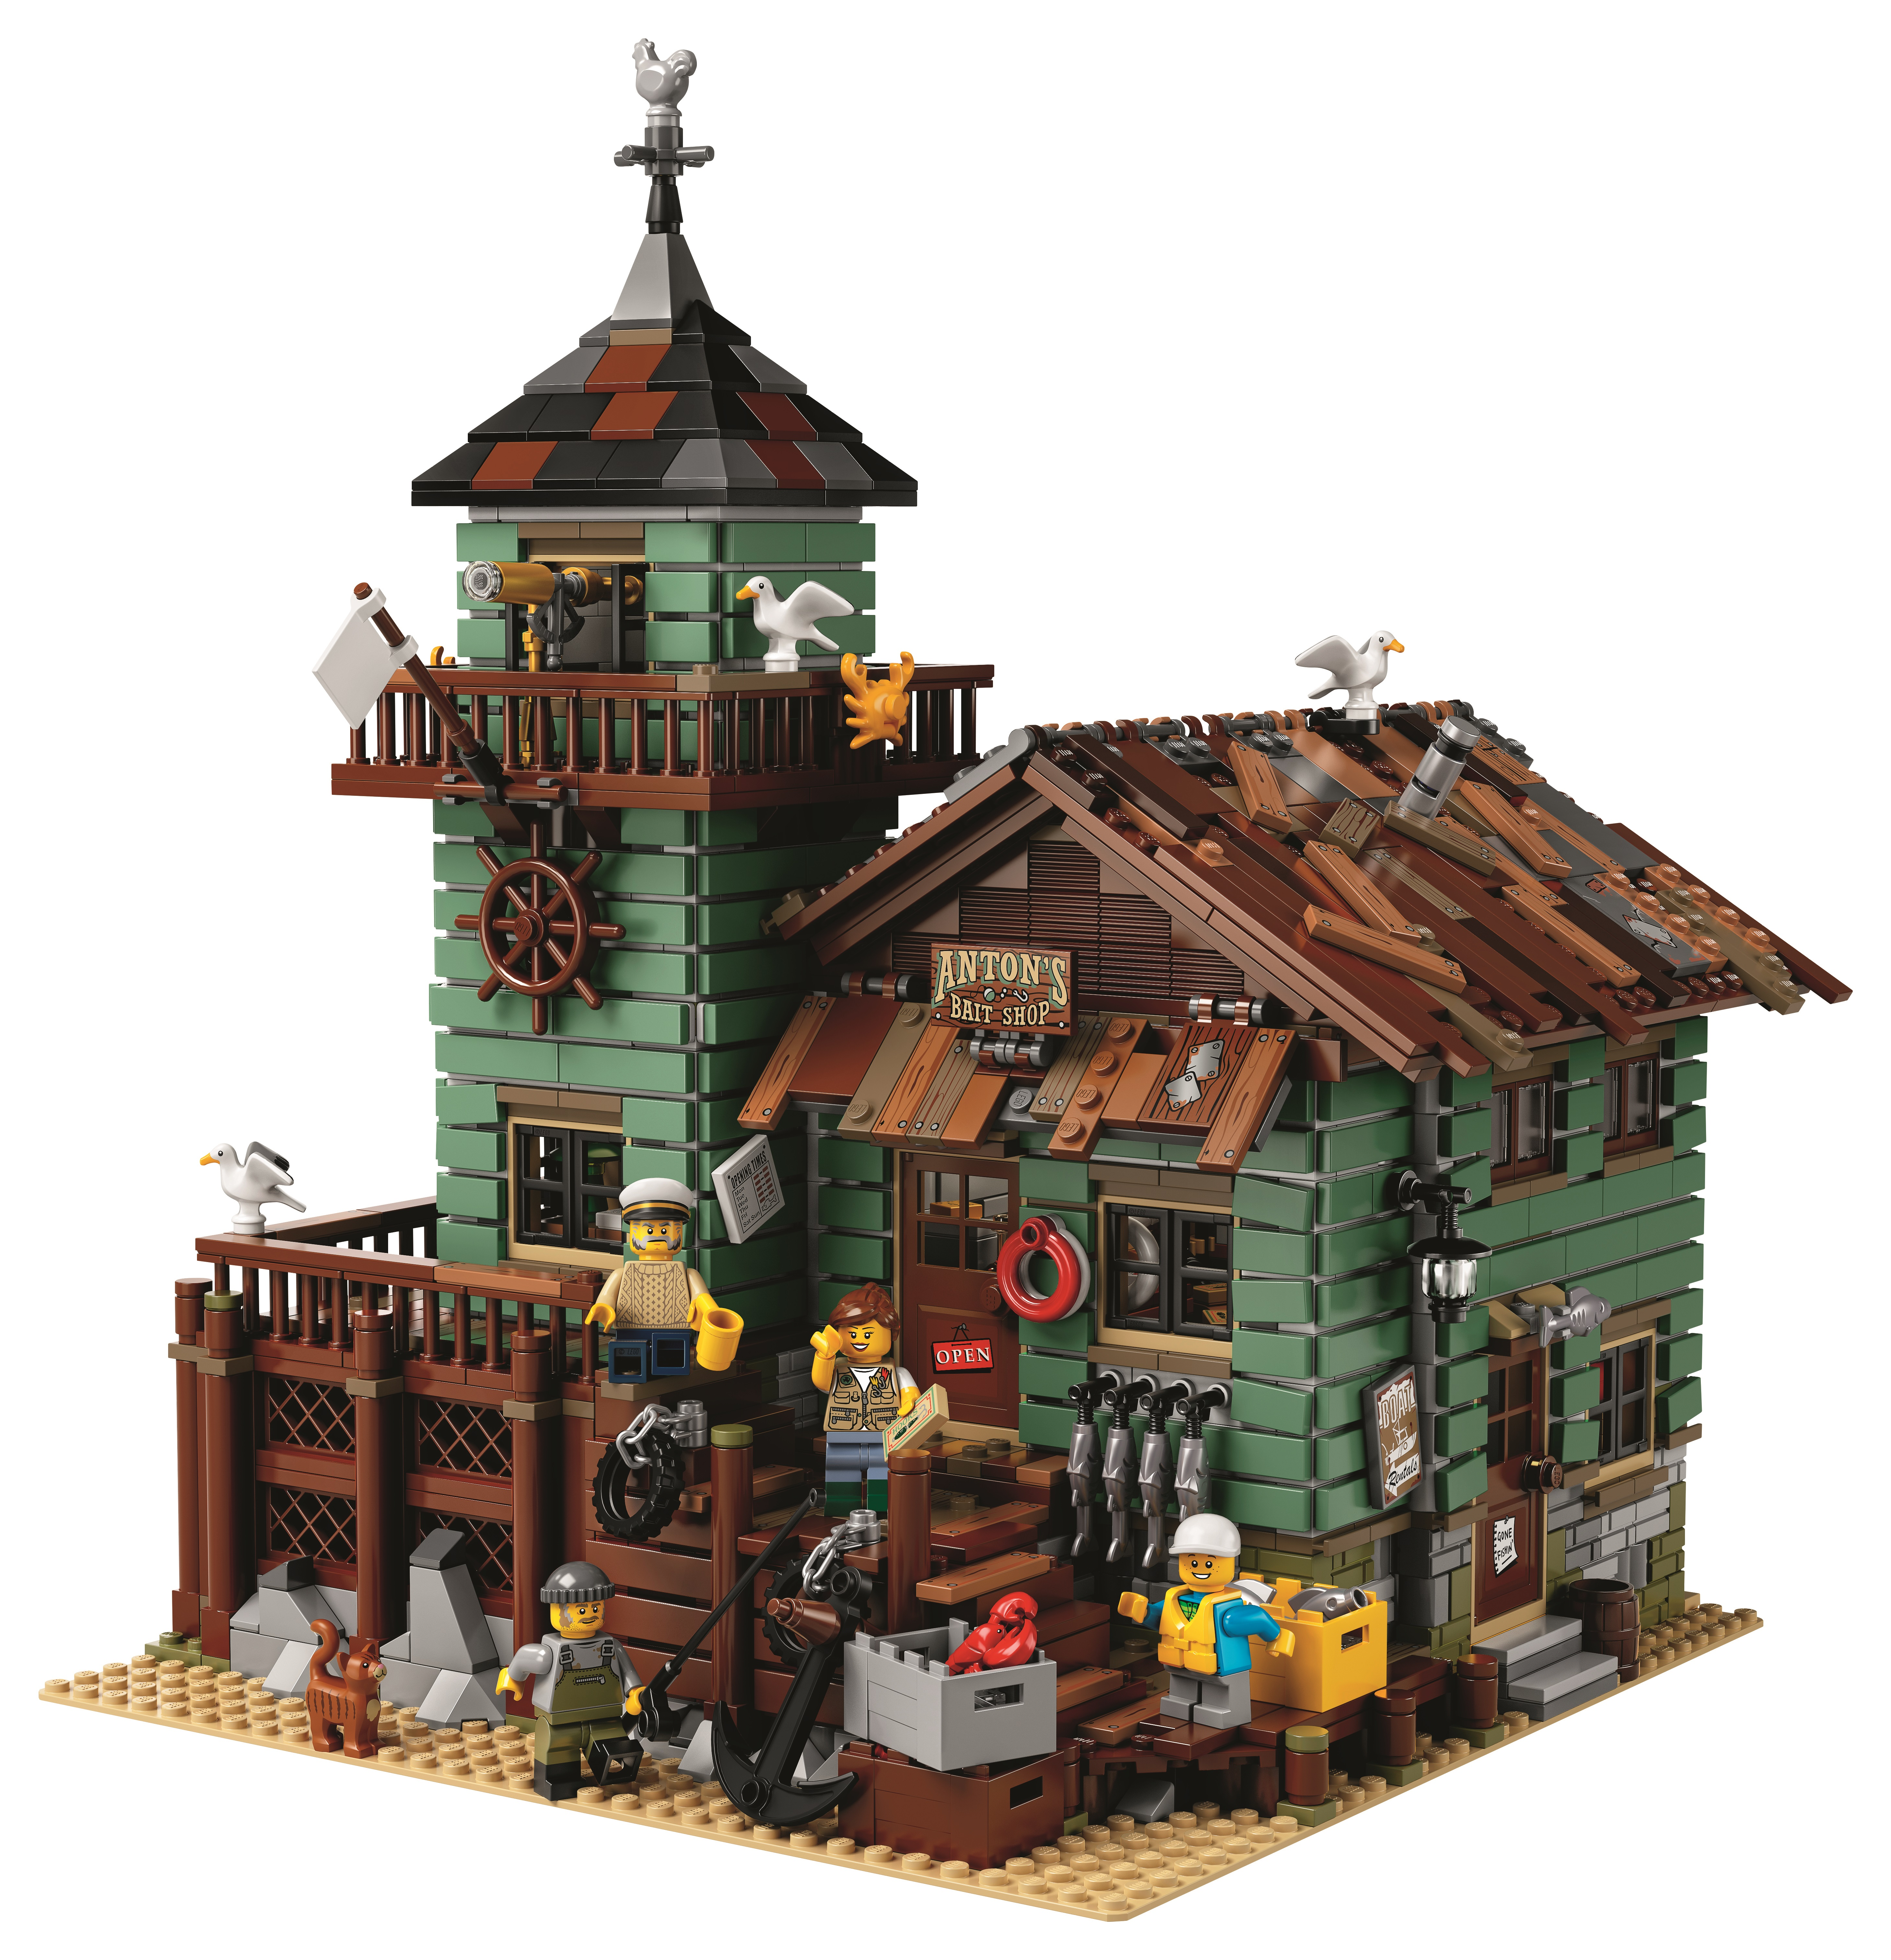 Action figure insider lego ideas announce old fishing for Lego ideas old fishing store